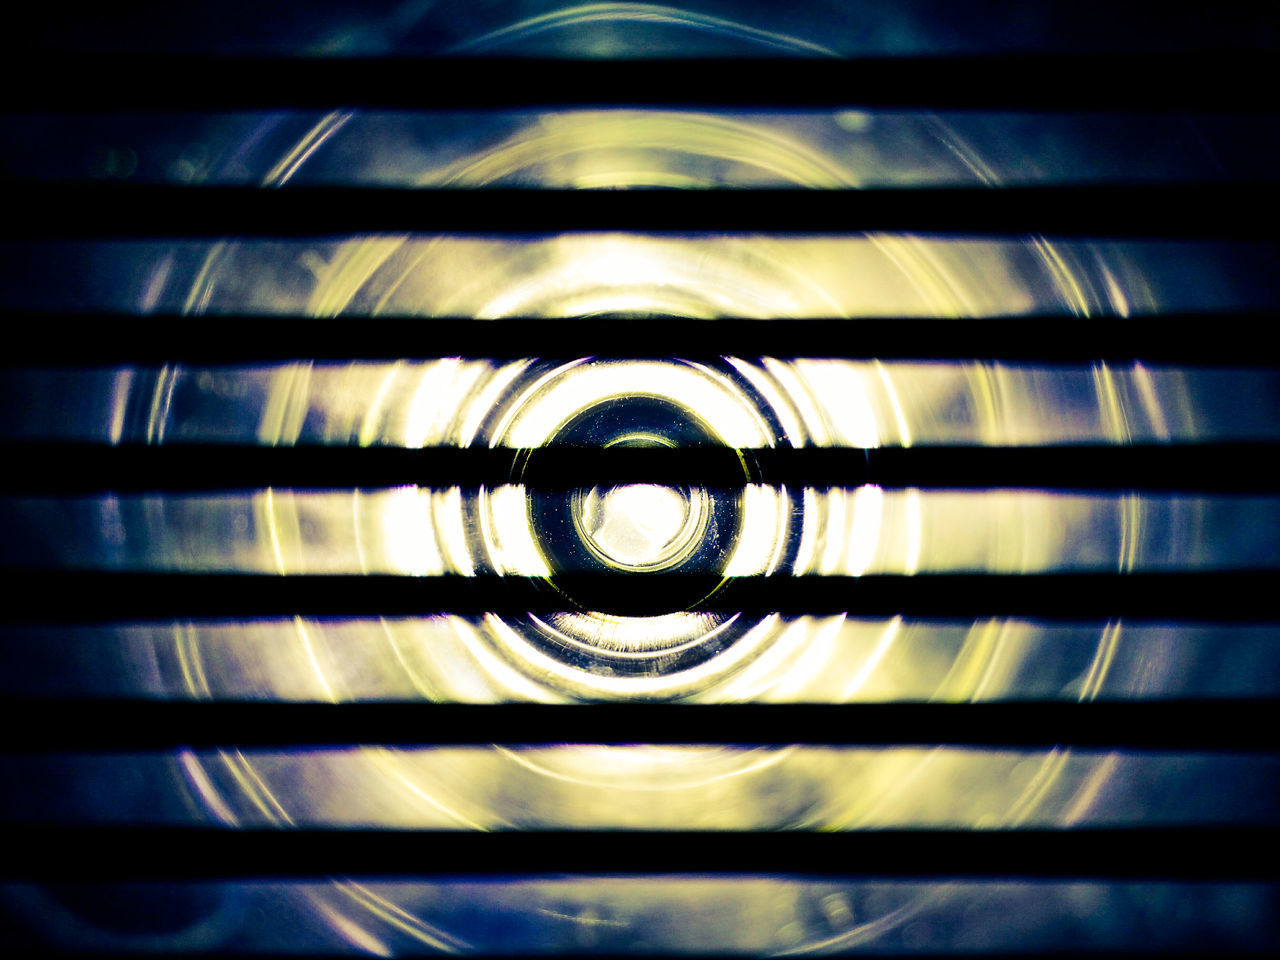 backgrounds, full frame, indoors, pattern, no people, close-up, concentric, day